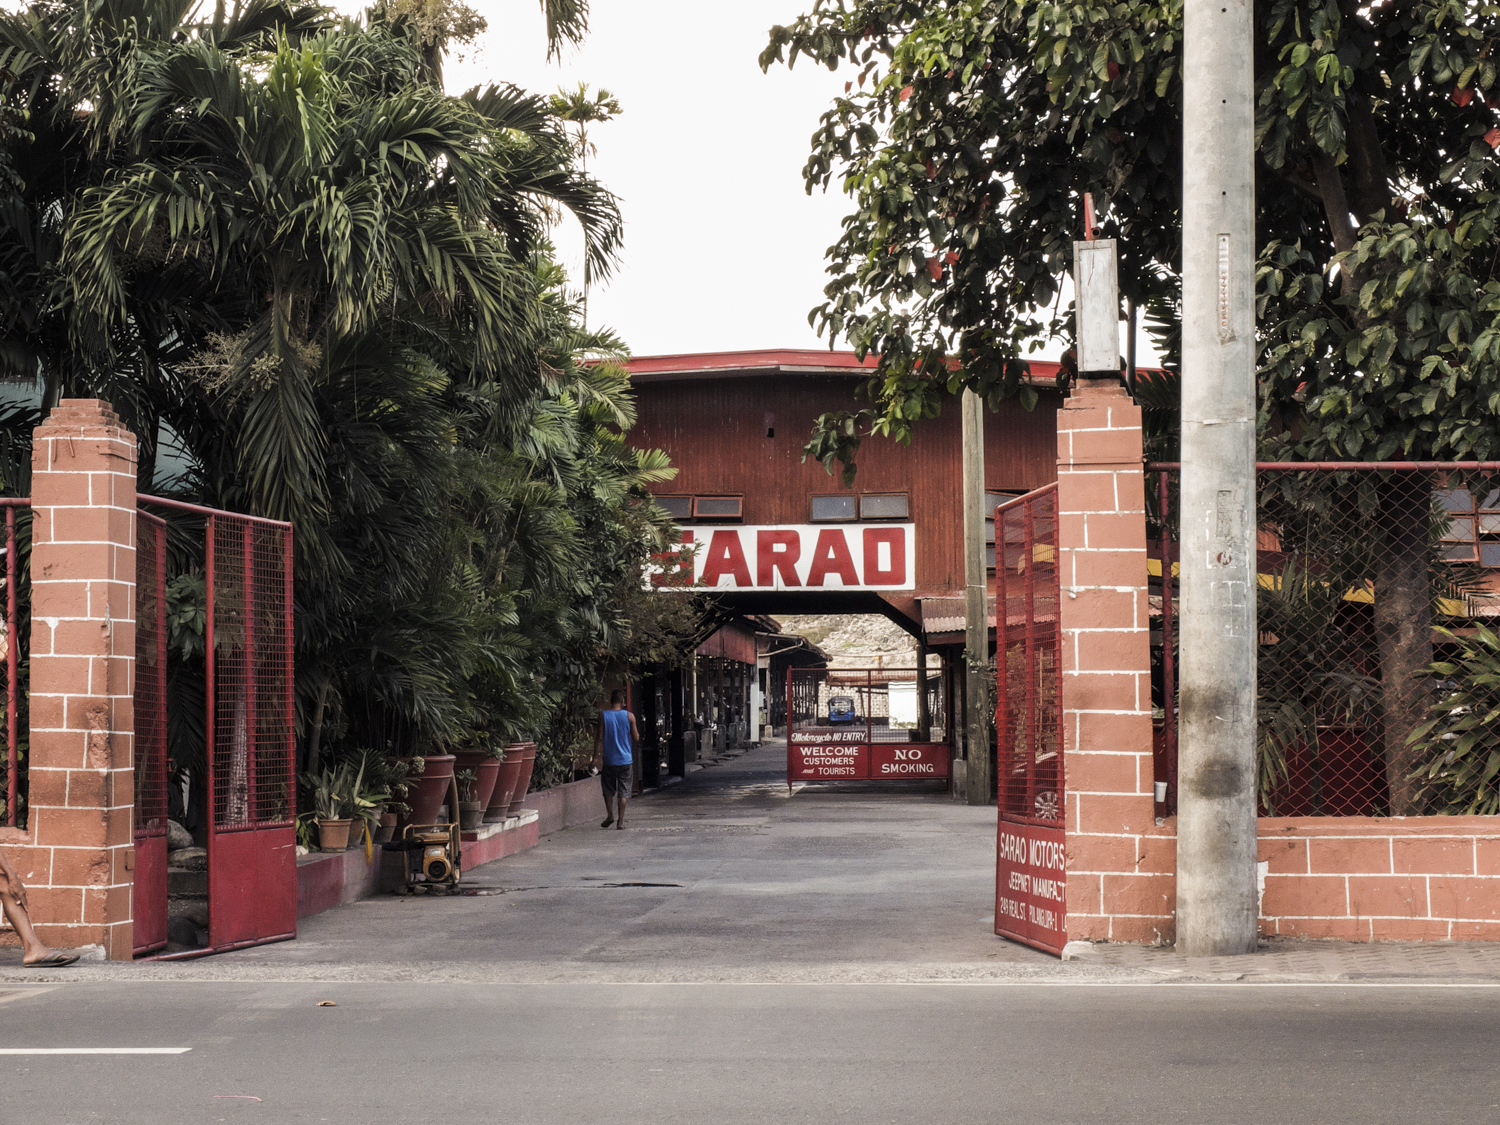 The Sarao Motors factory serves as a museum for Jeepneys from various decades.